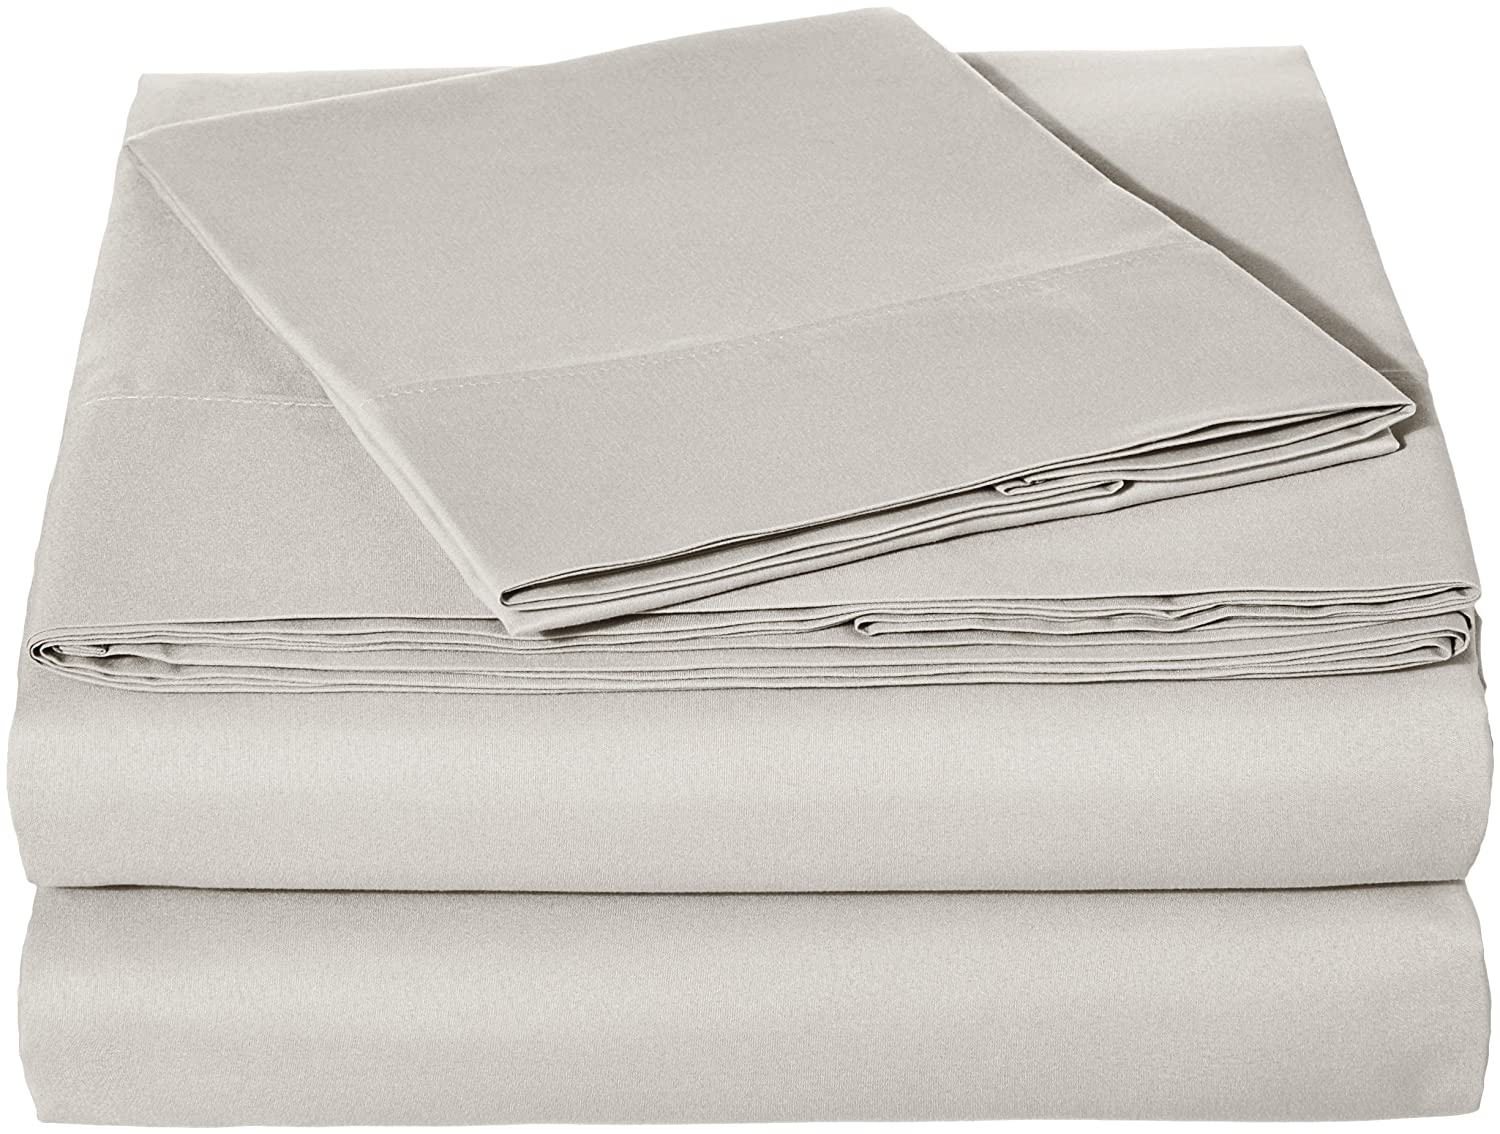 AmazonBasics Microfiber Sheet Set - Twin, Light Grey